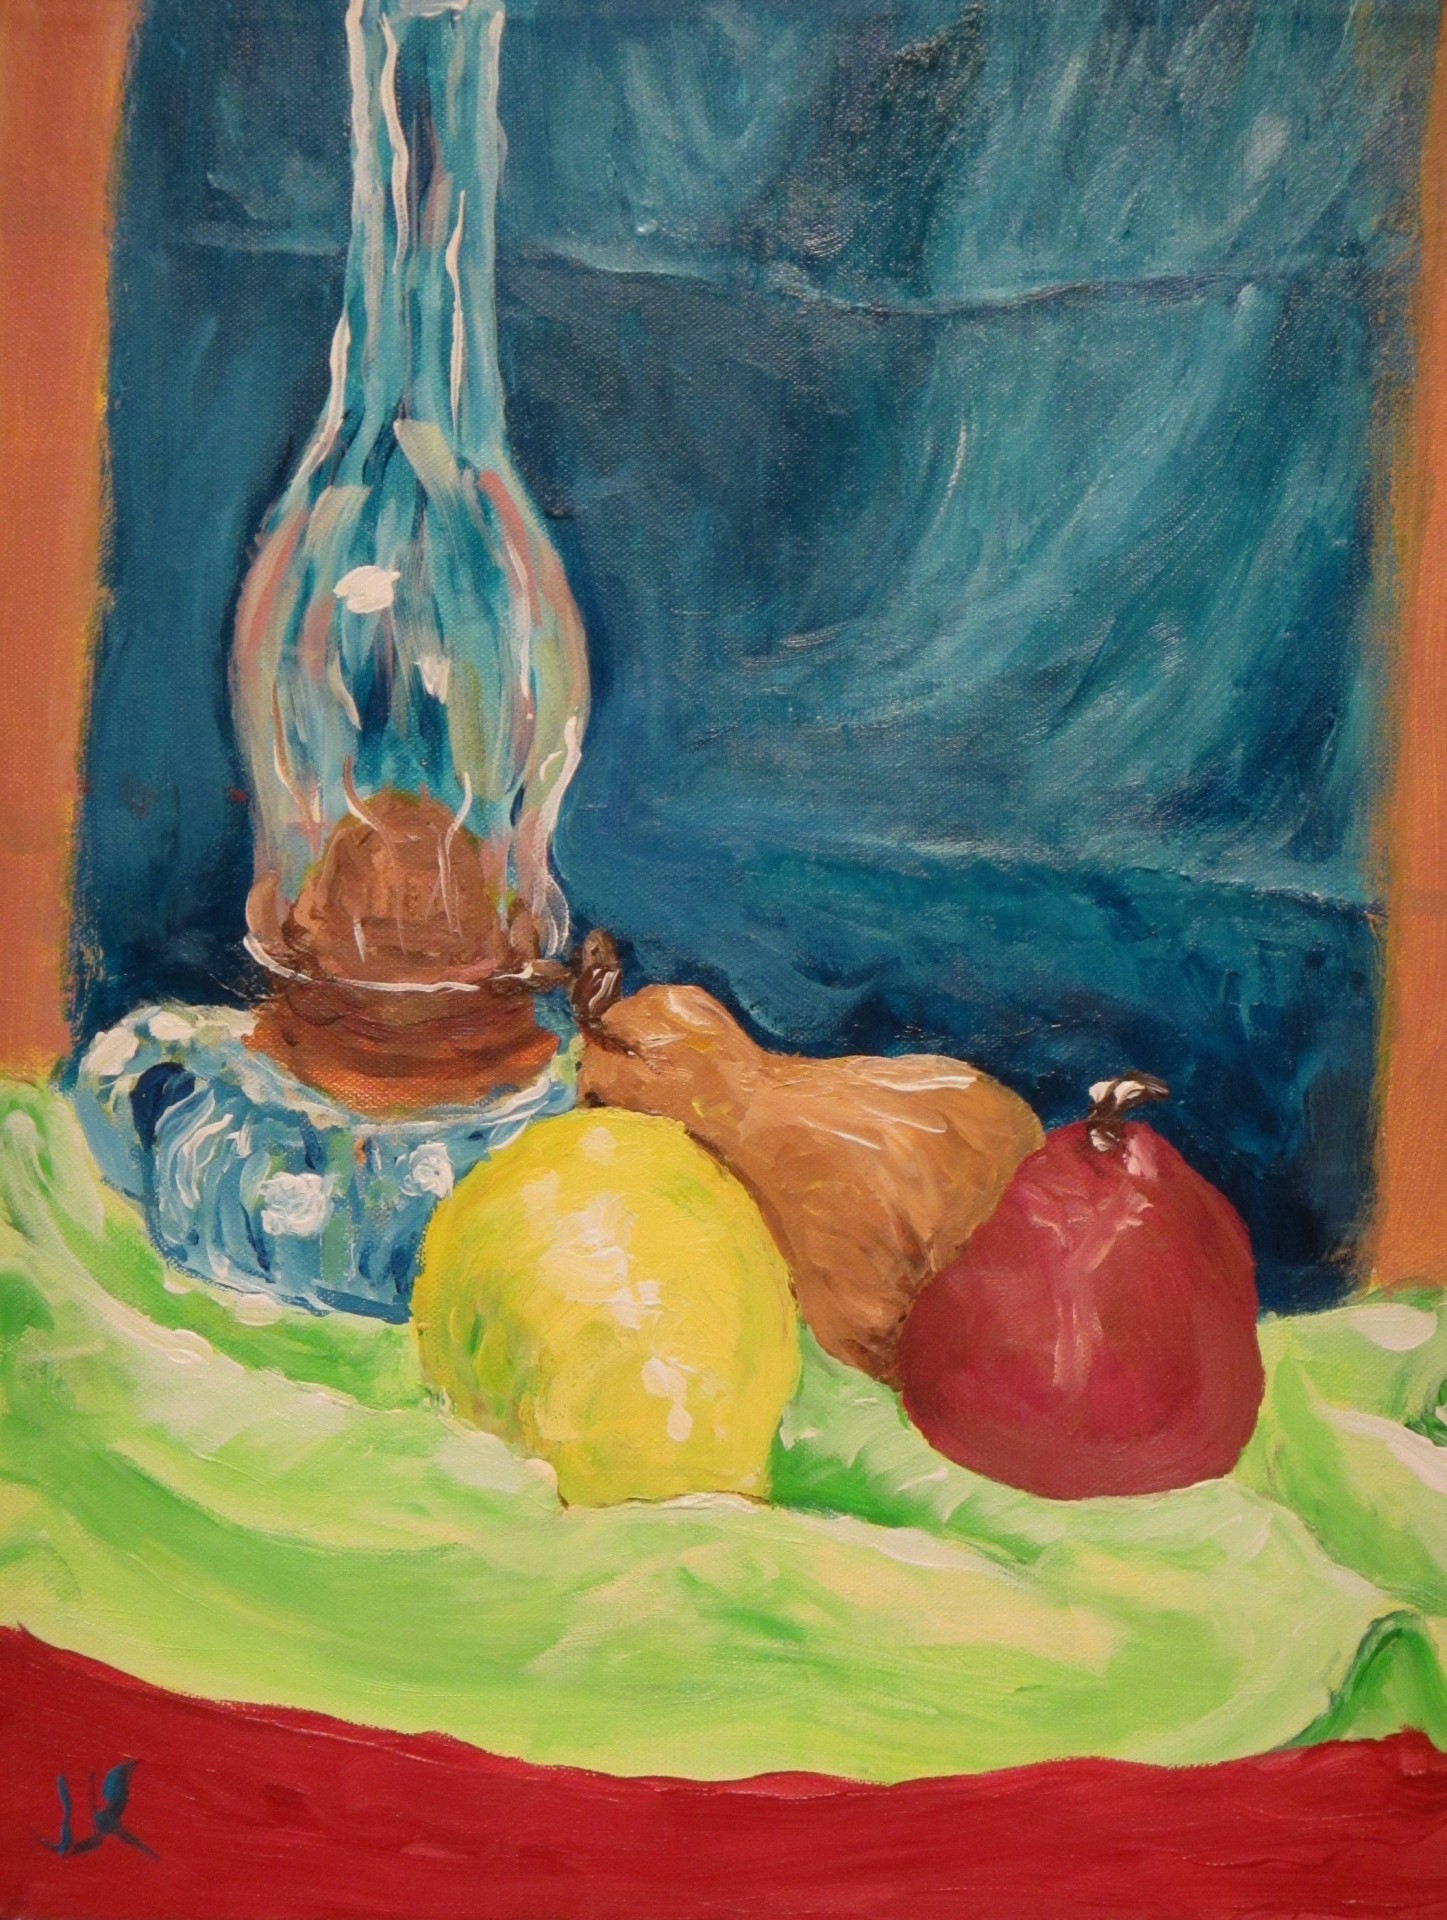 Acrylic on canvas still life painting of some pears and an old oil lamp.